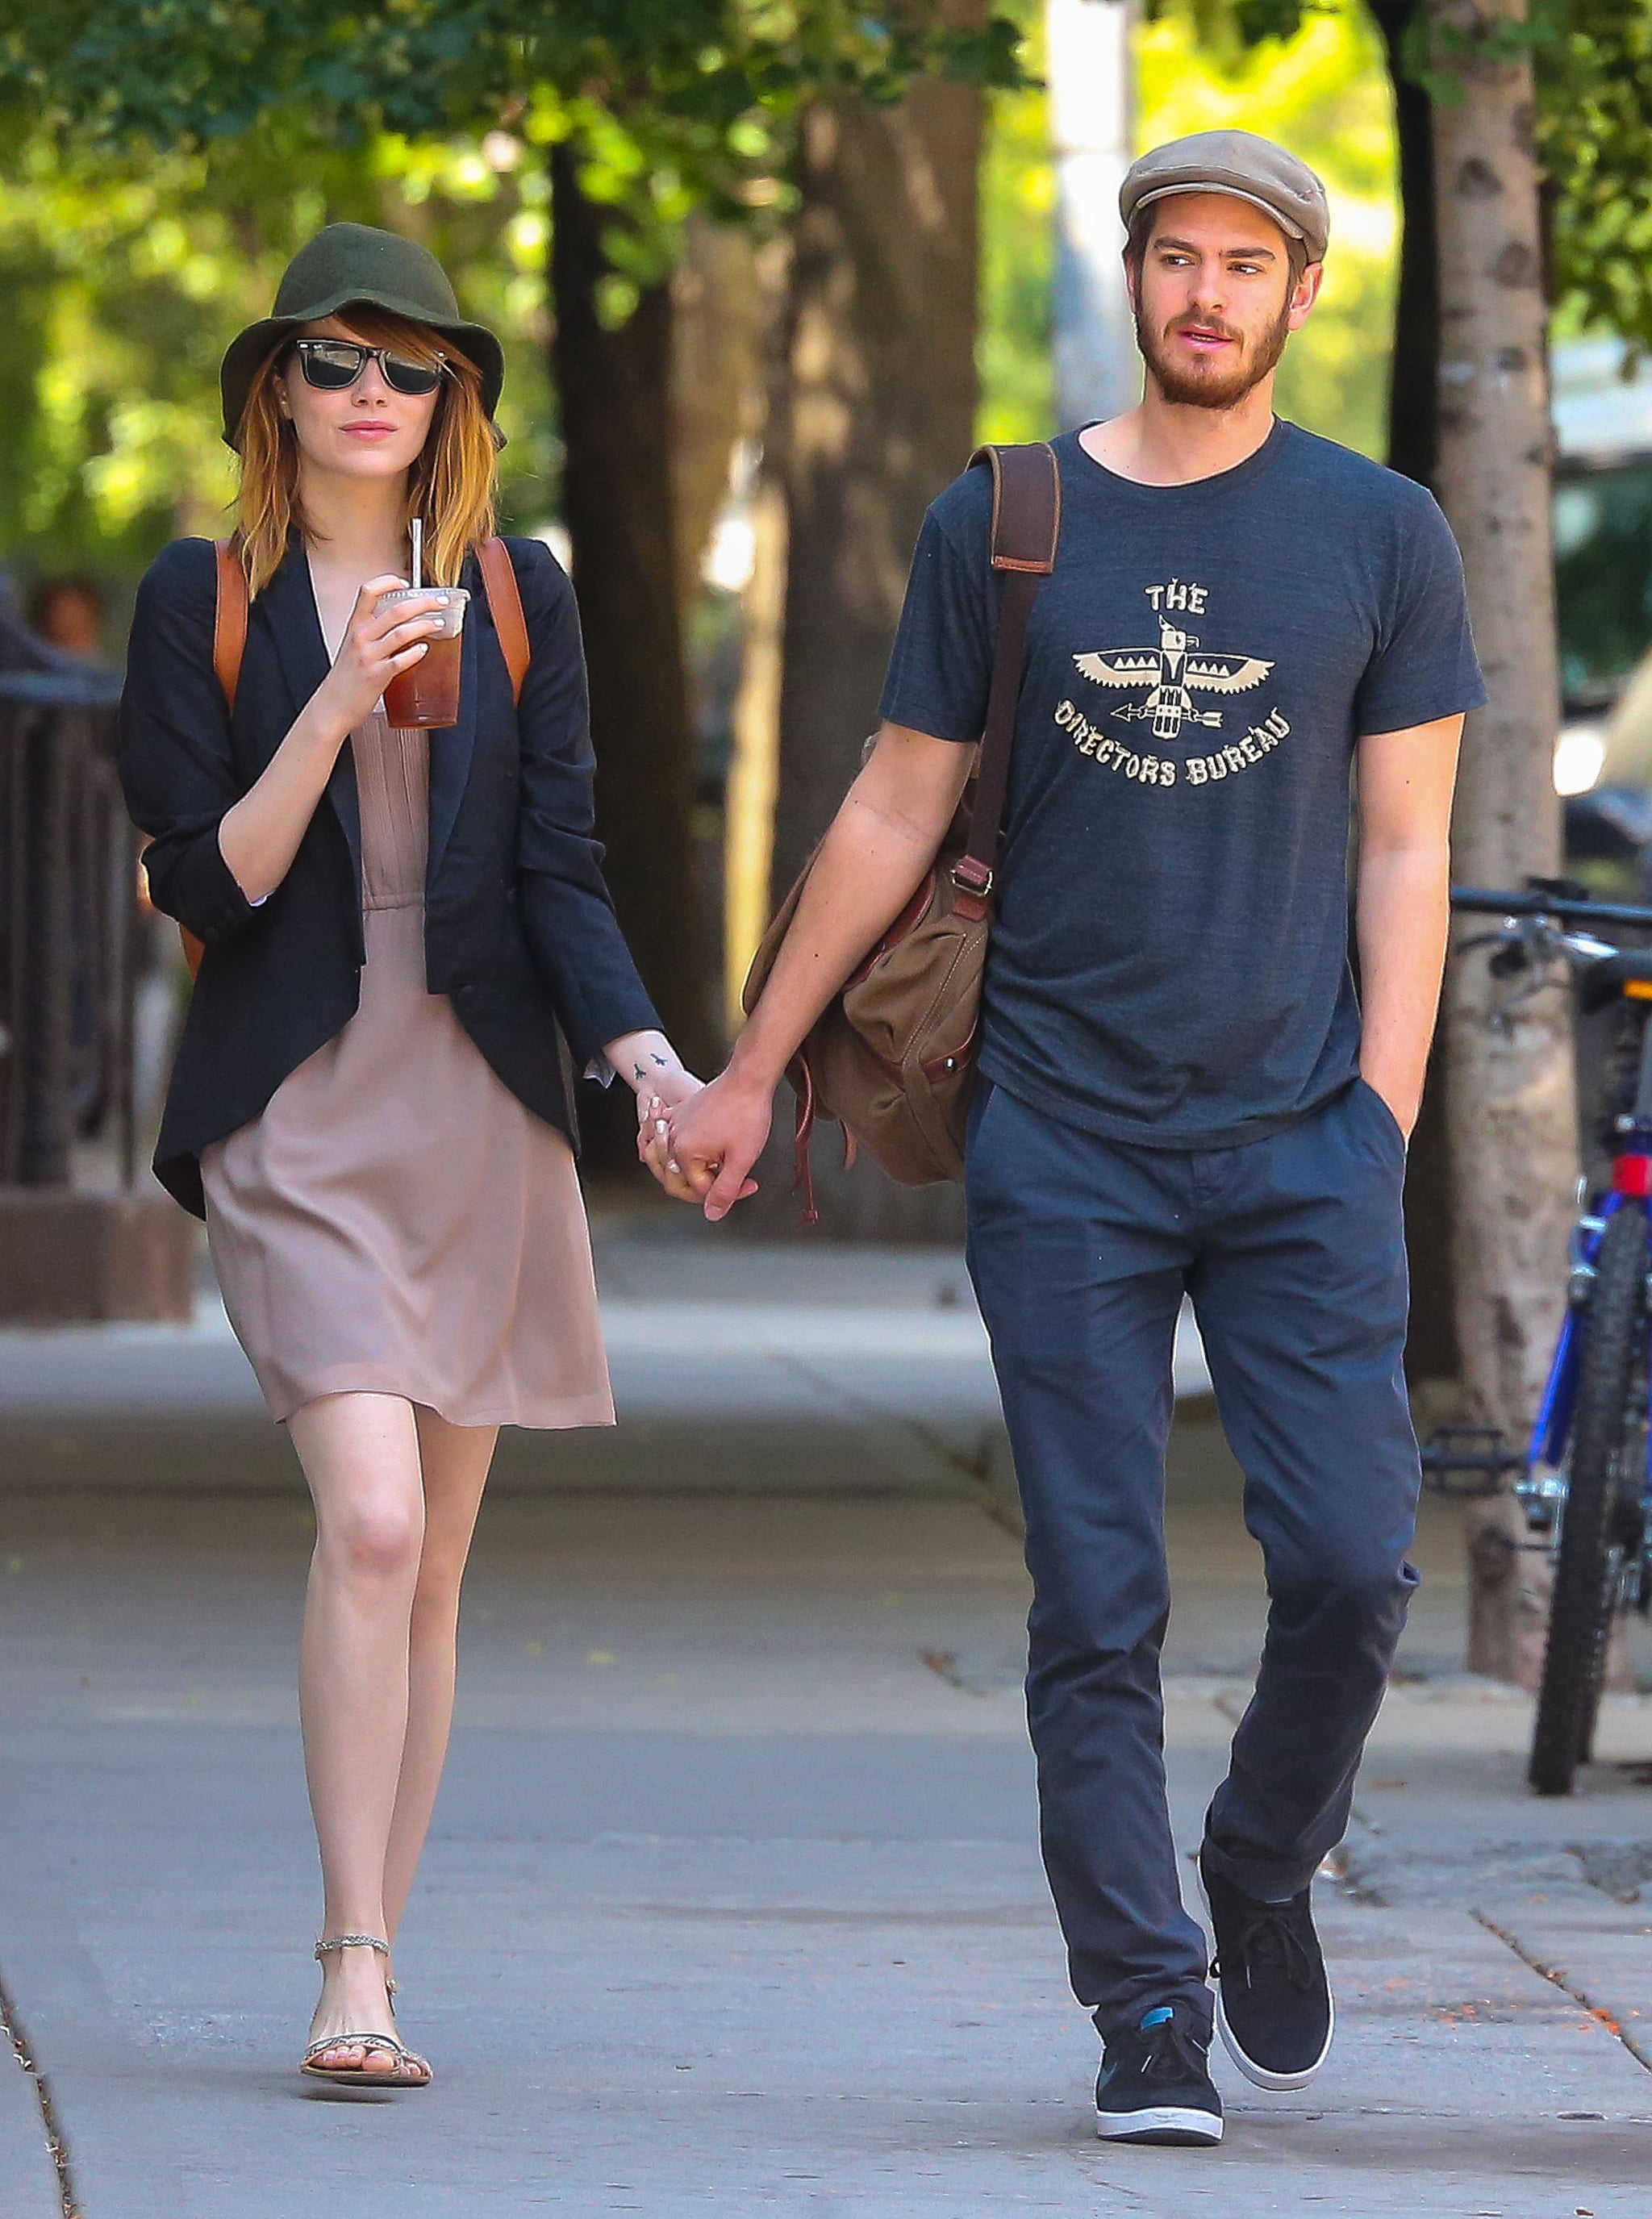 Emma Stone and Andrew Garfield Give Us Some Movie-Worthy PDA